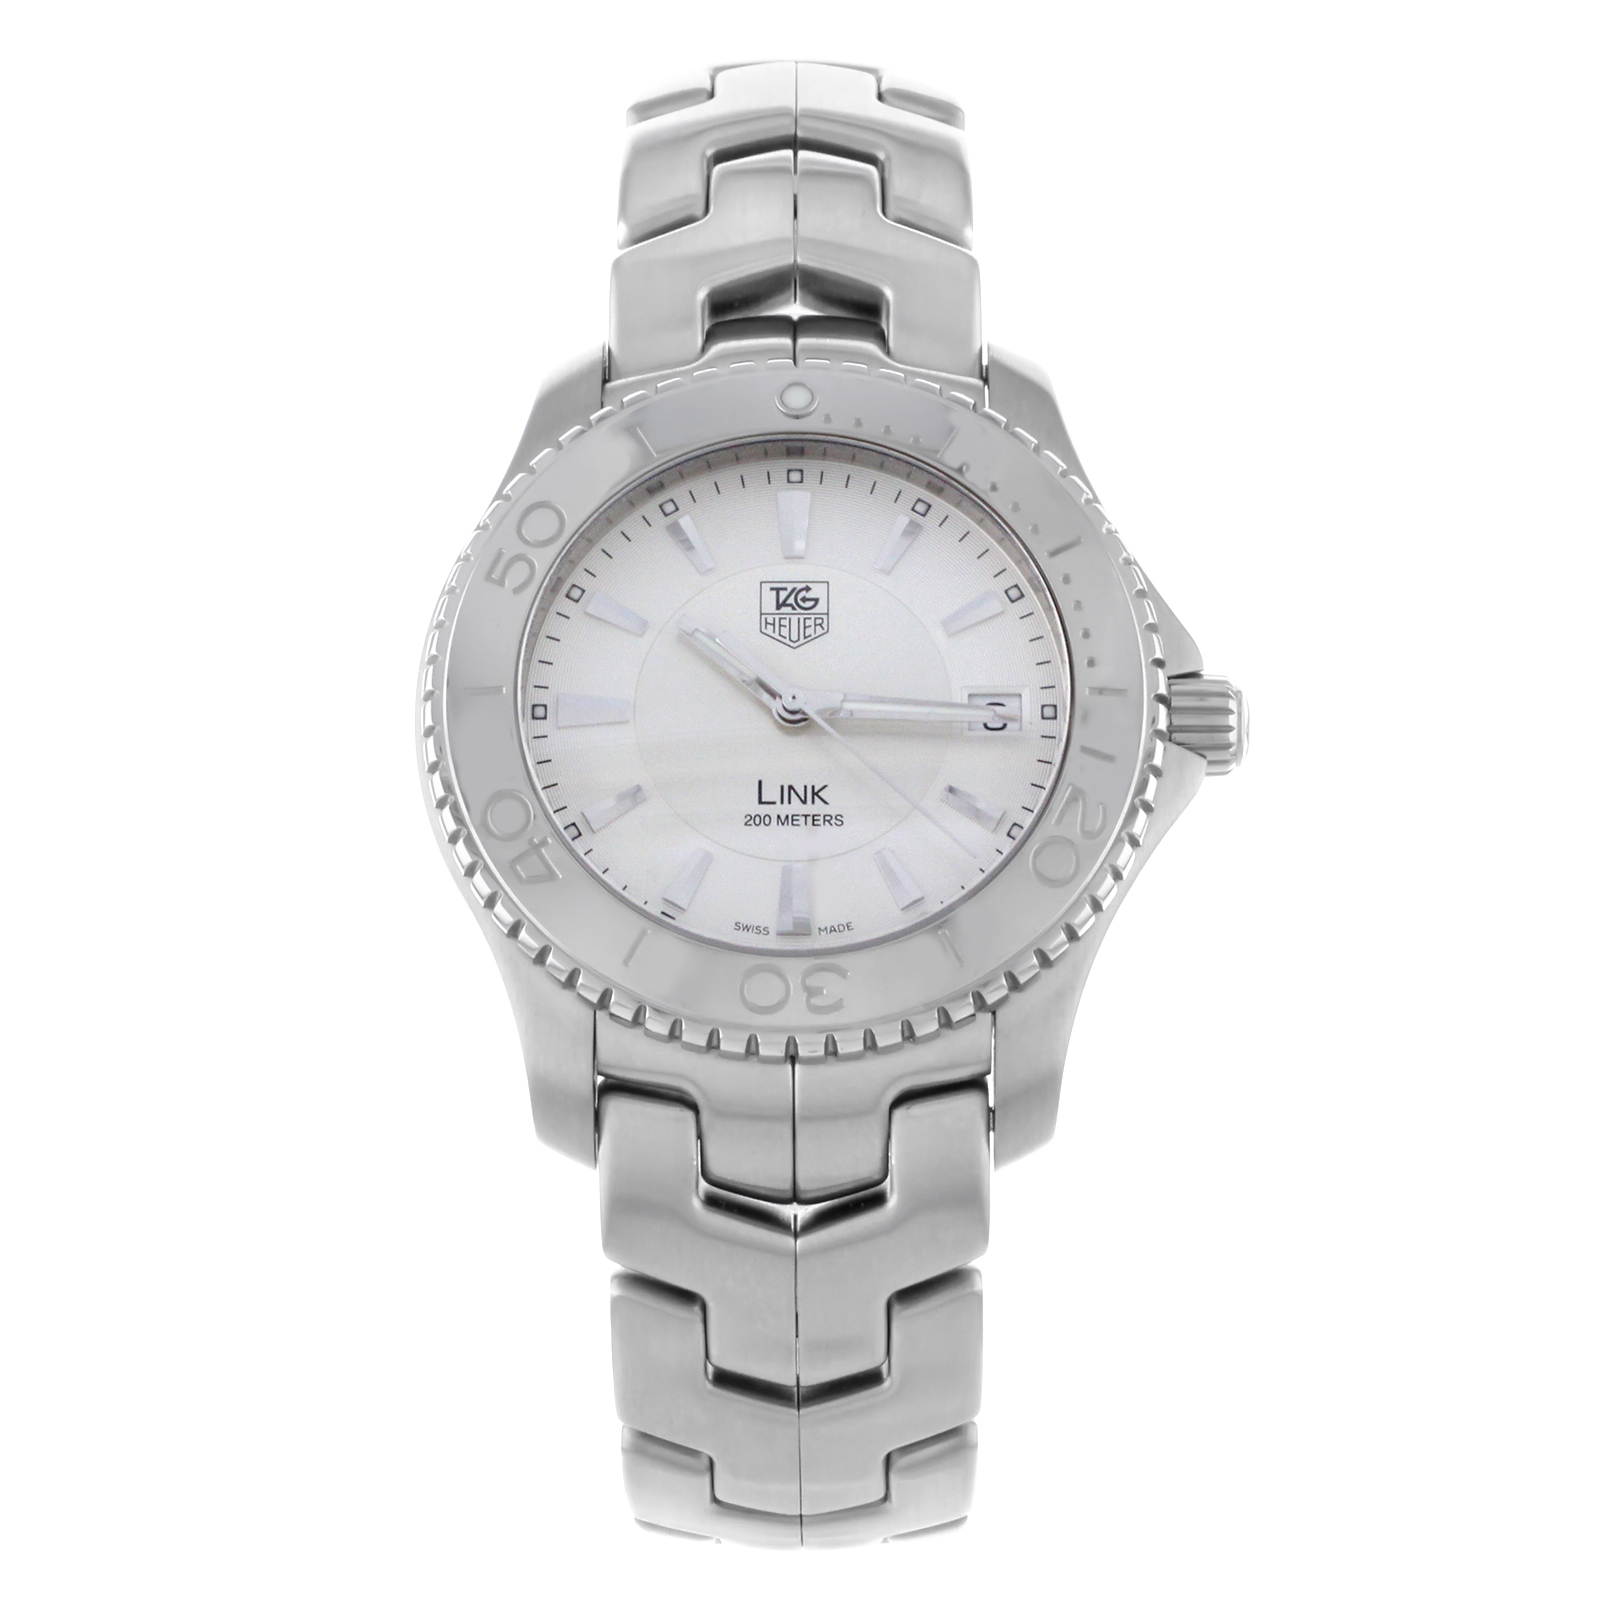 Certified Pre-owned TAG Heuer Link WJ1111.BA0570 Stainles...